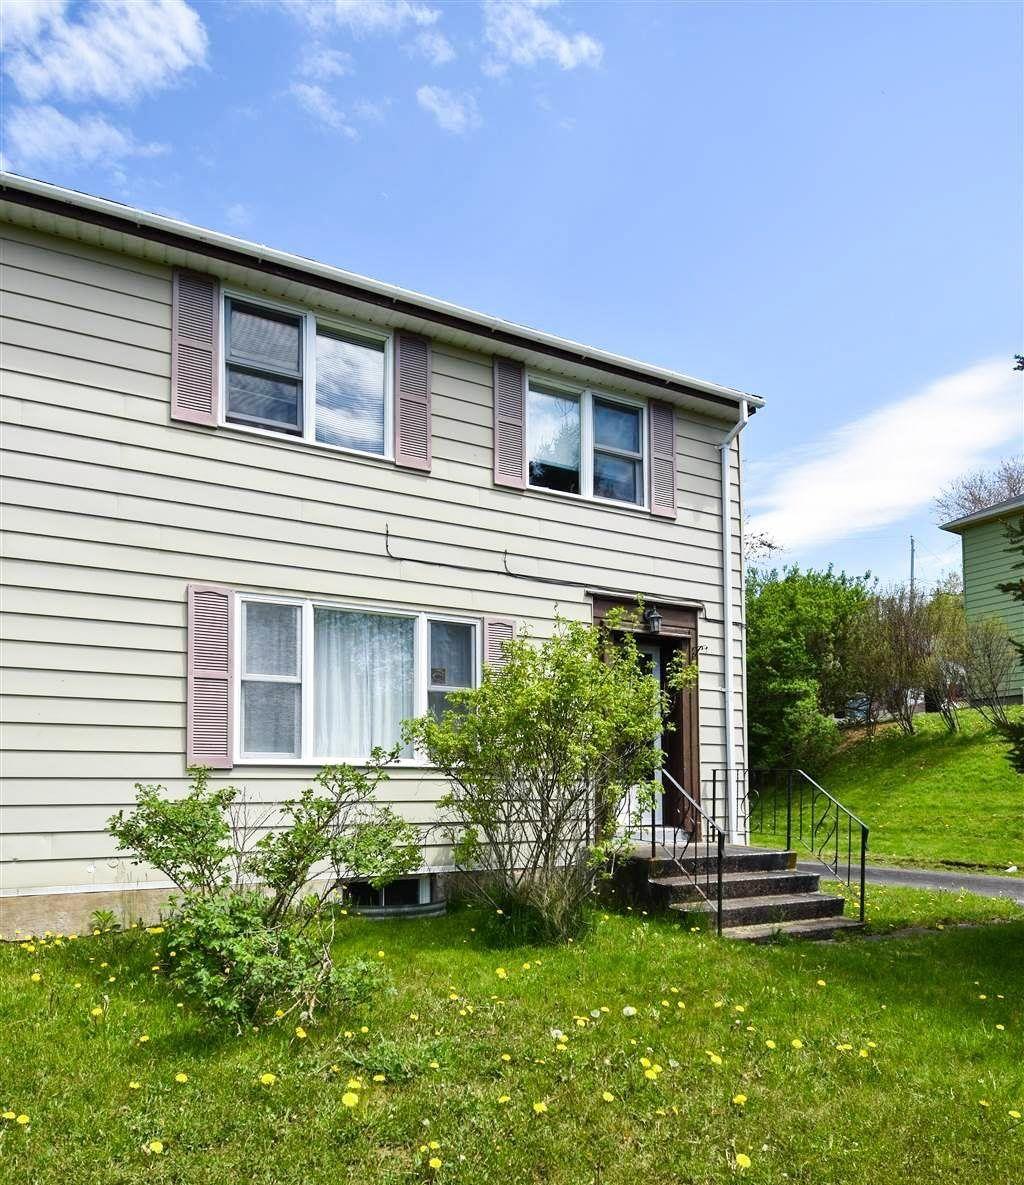 Main Photo: 104 OLD SCHOOL HILL Road in Cornwallis Park: 400-Annapolis County Residential for sale (Annapolis Valley)  : MLS®# 202112133